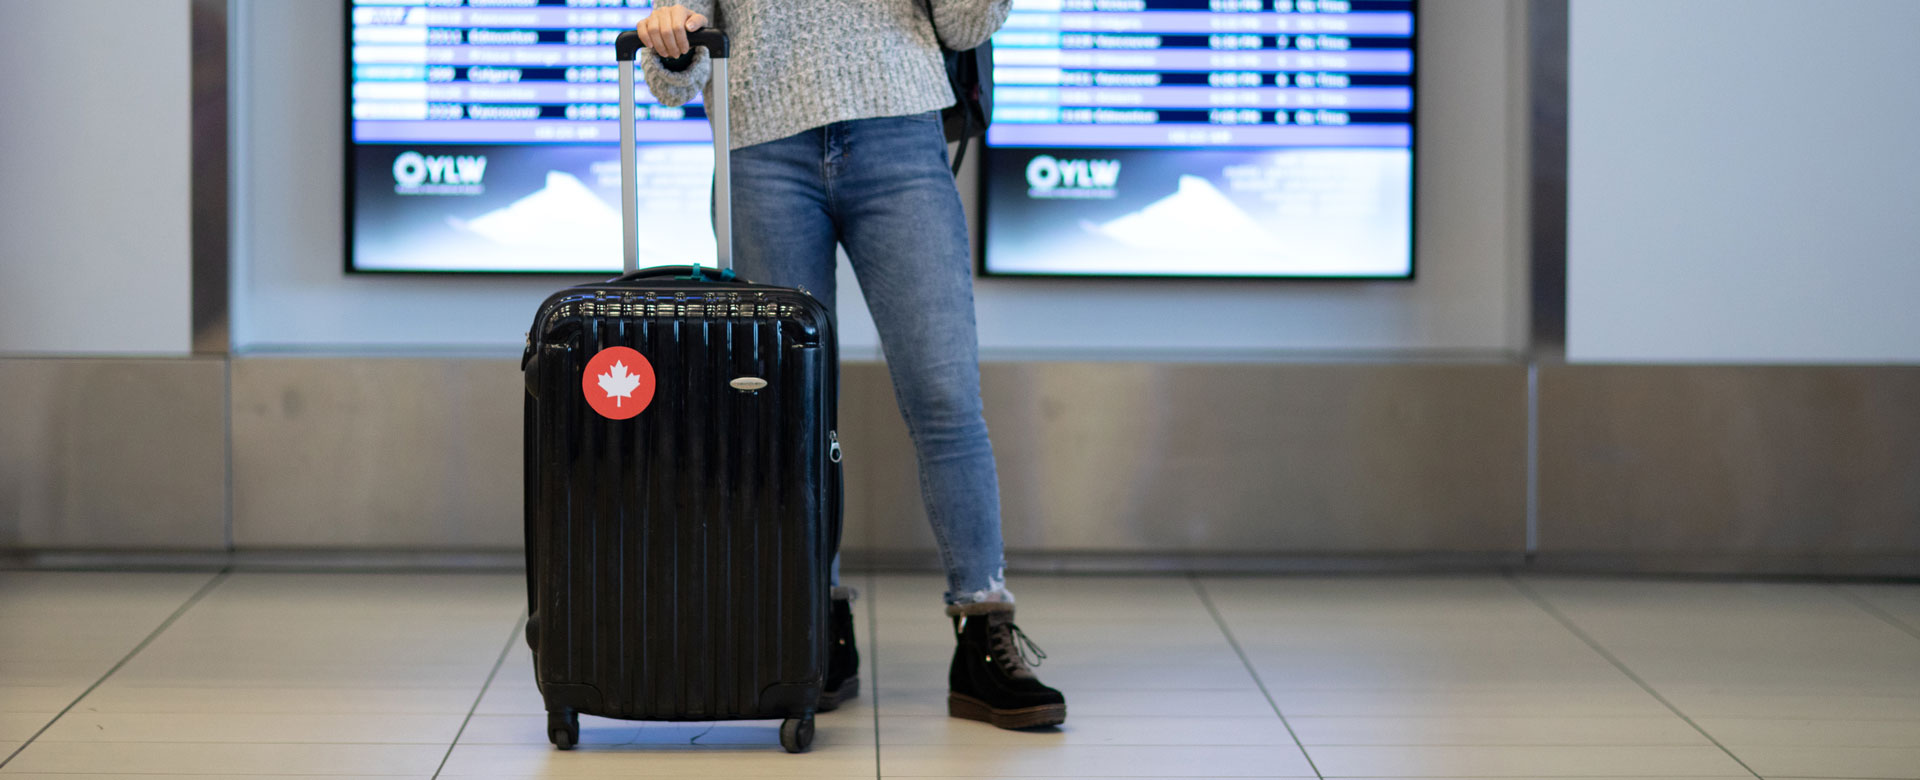 A student standing in the airport with their suitcase